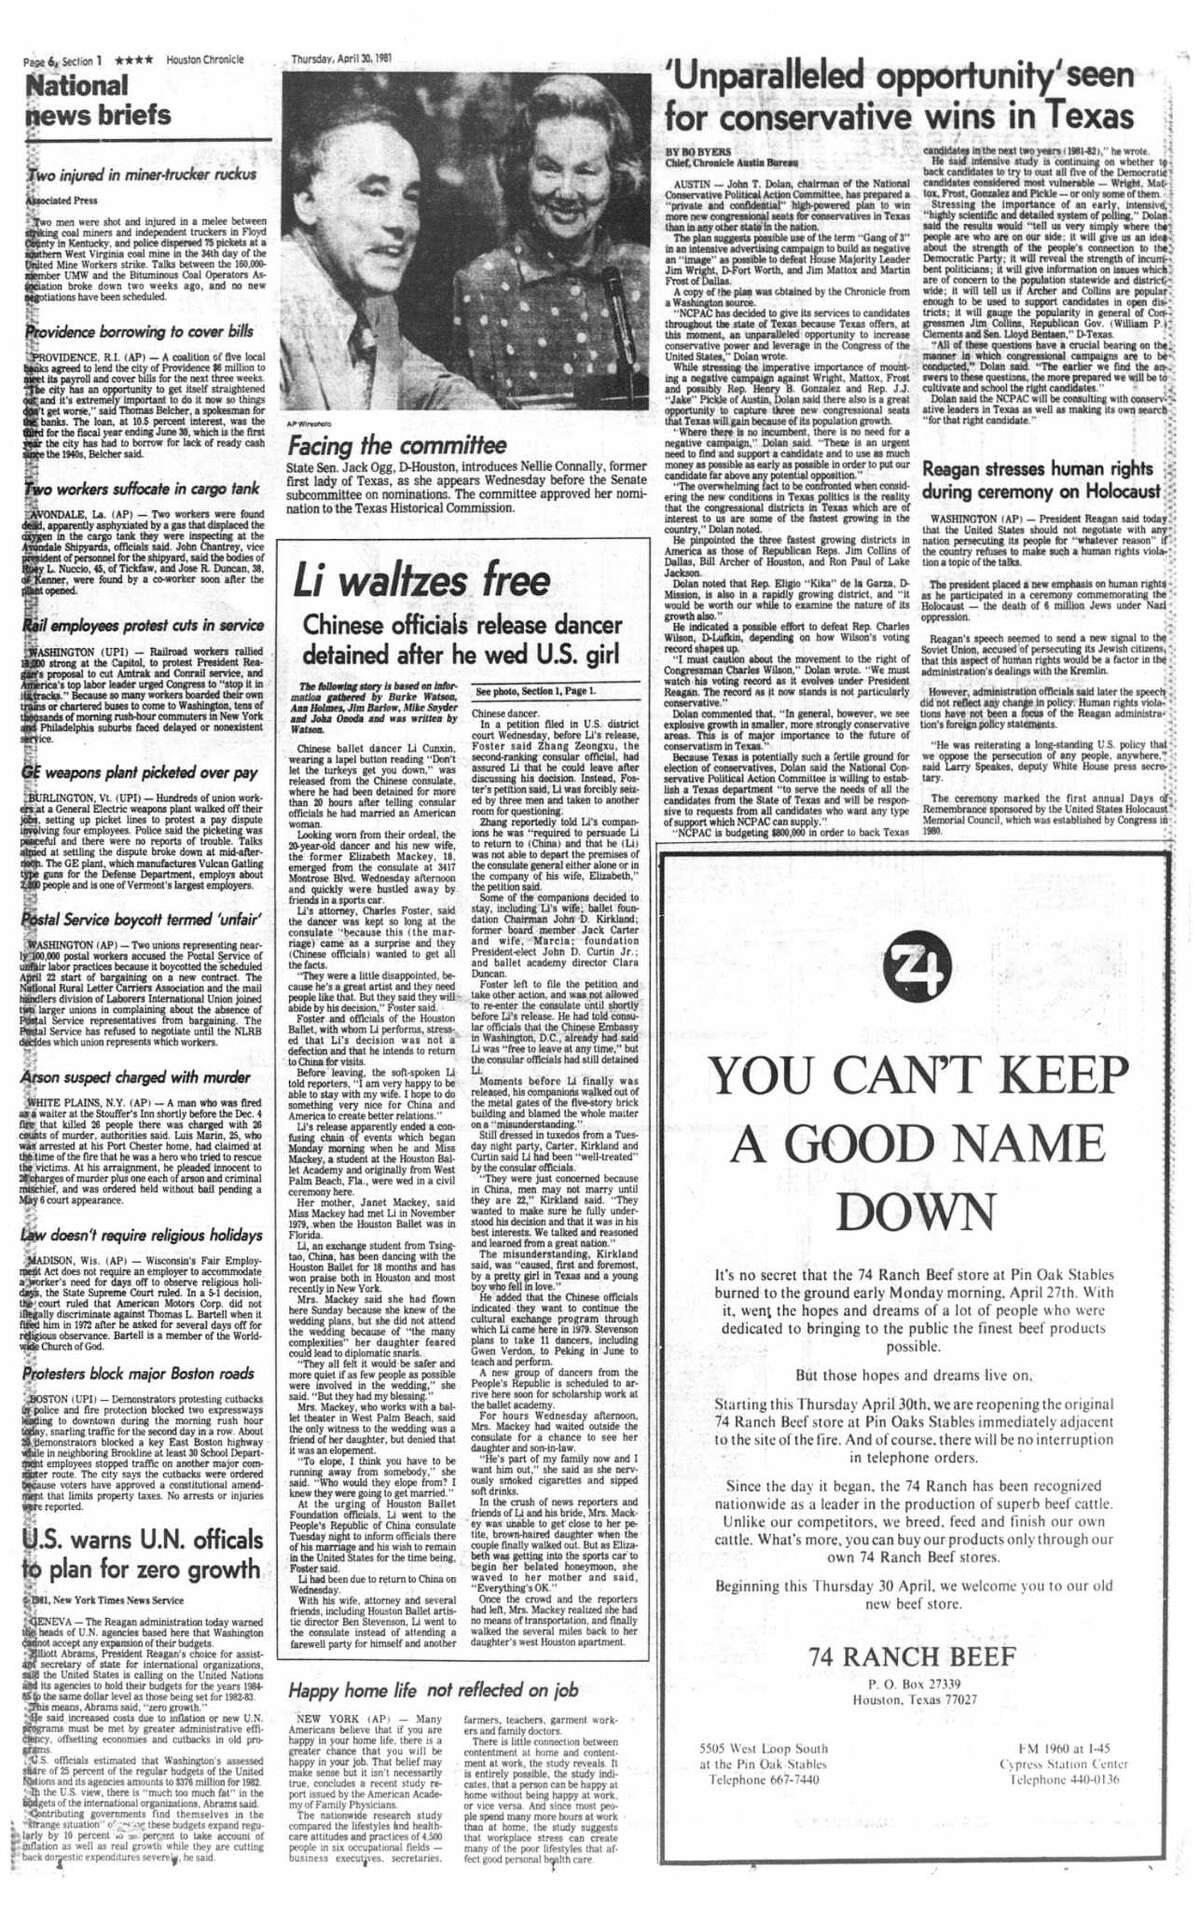 Houston Chronicle inside page - April 30, 1981 - section 1, page 6. Li waltzes free. Chinese officials release dancer detained after he wed U.S. girl